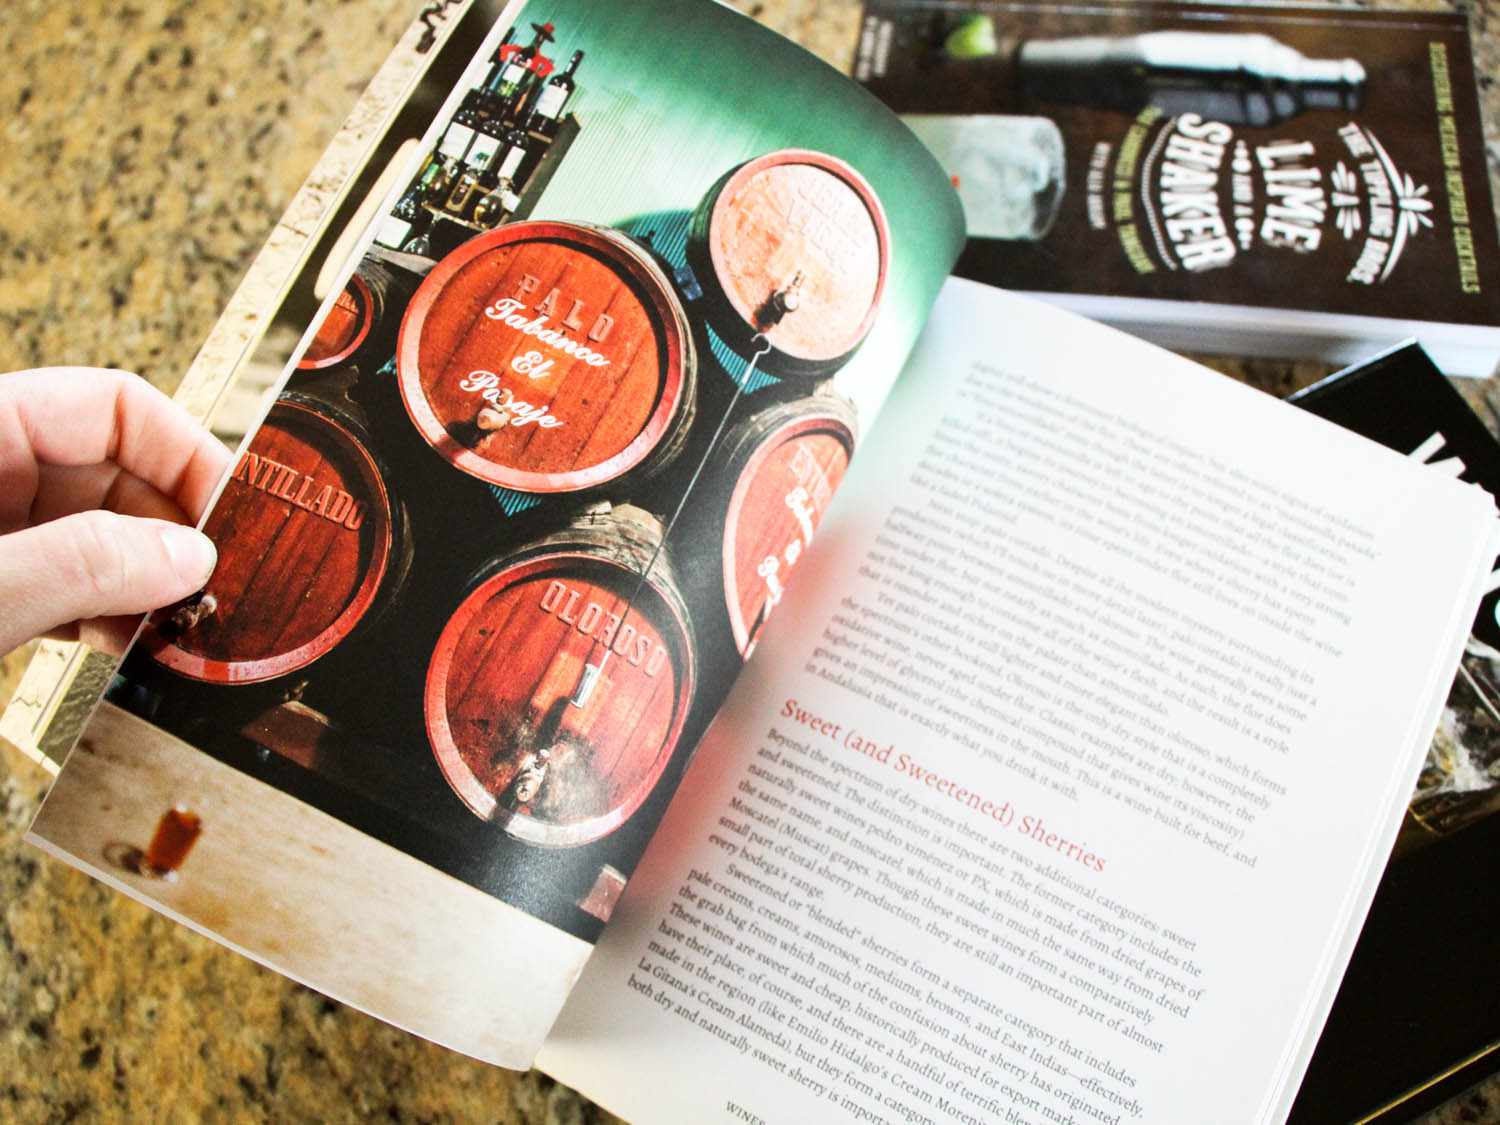 20150406-cocktail-books-part-2-recipes-and-specialties-section-emma-janzen.jpg